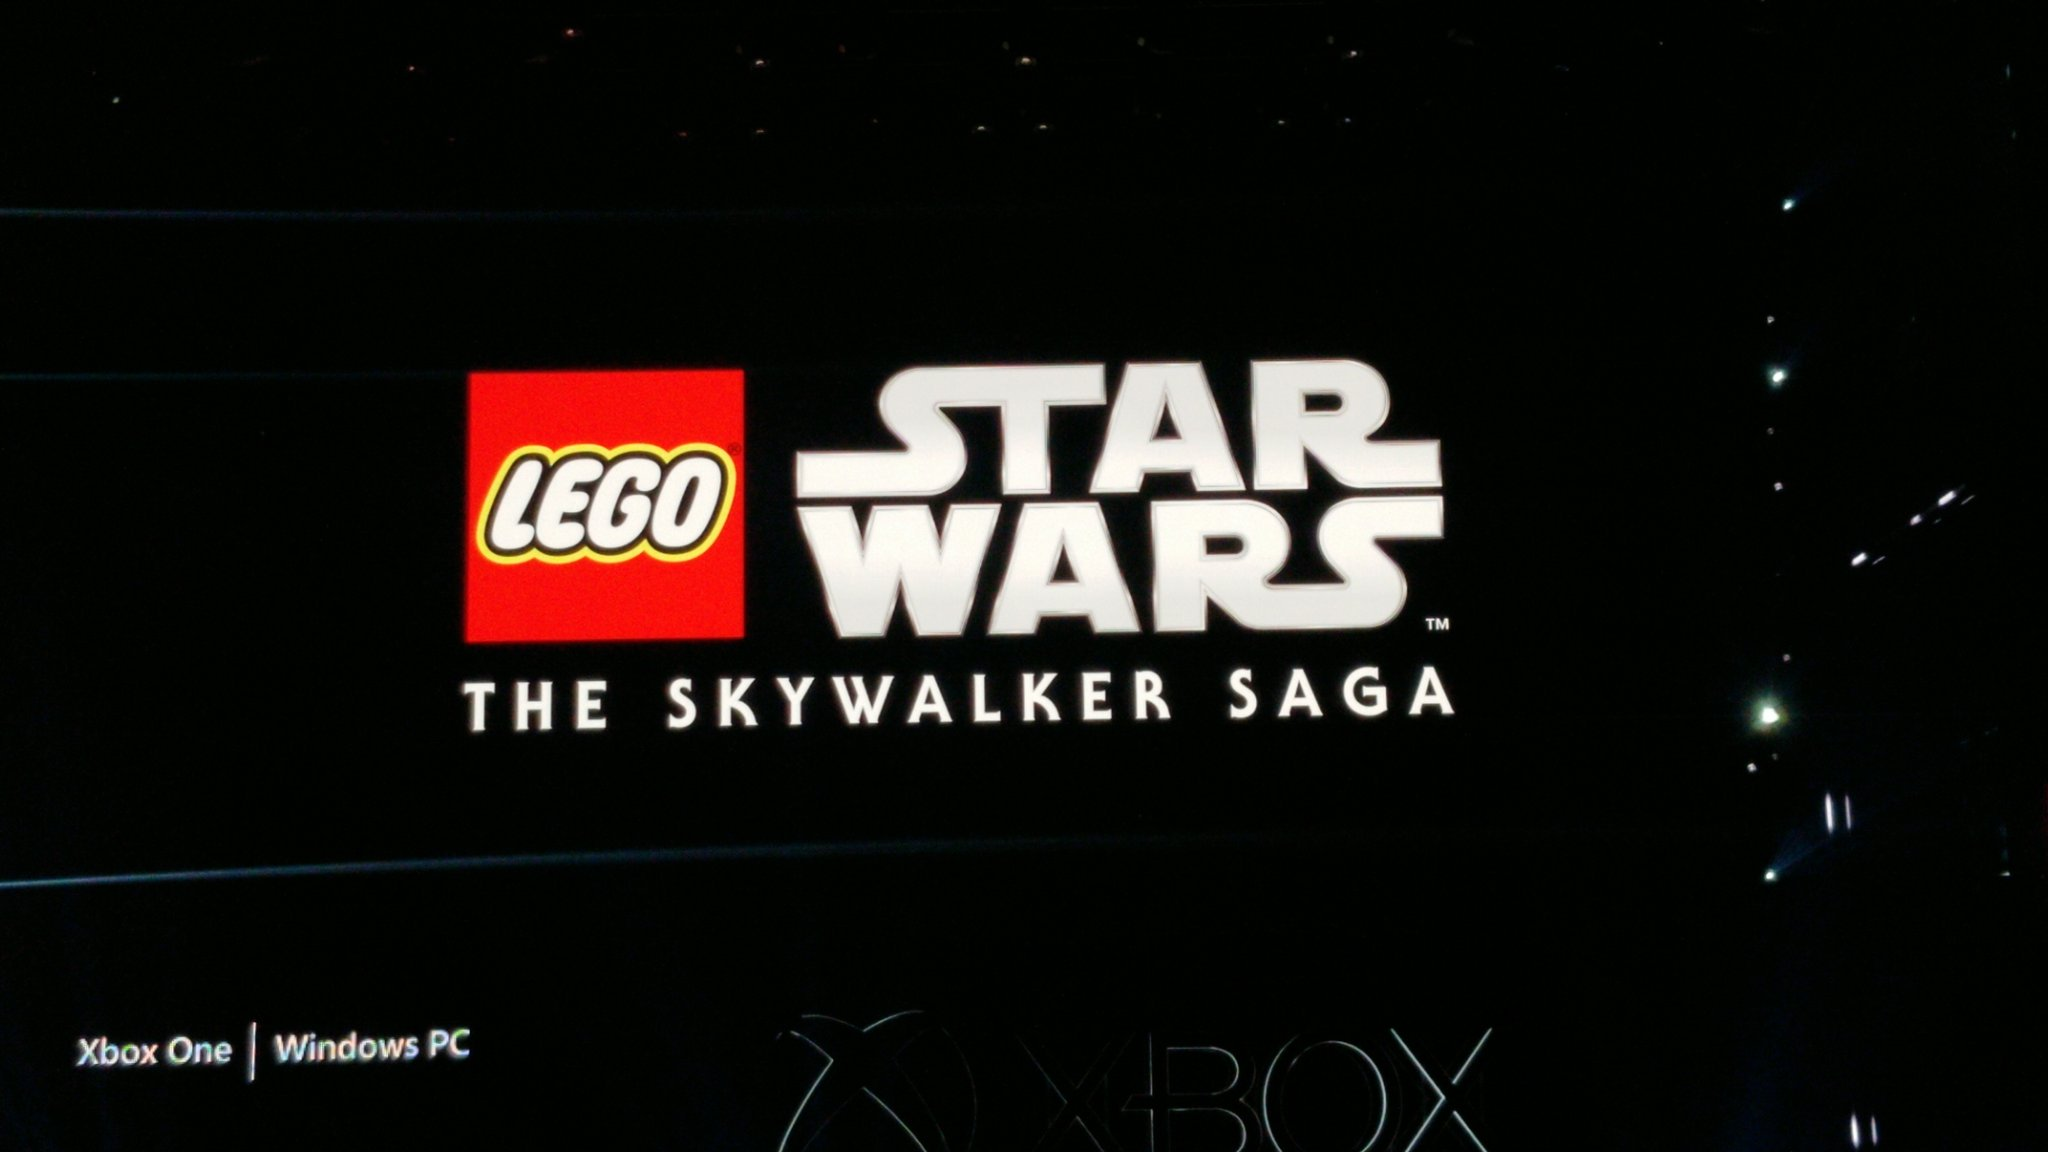 Lego Star Wars: The Skywalker Saga Covers Nine Movies In One Game